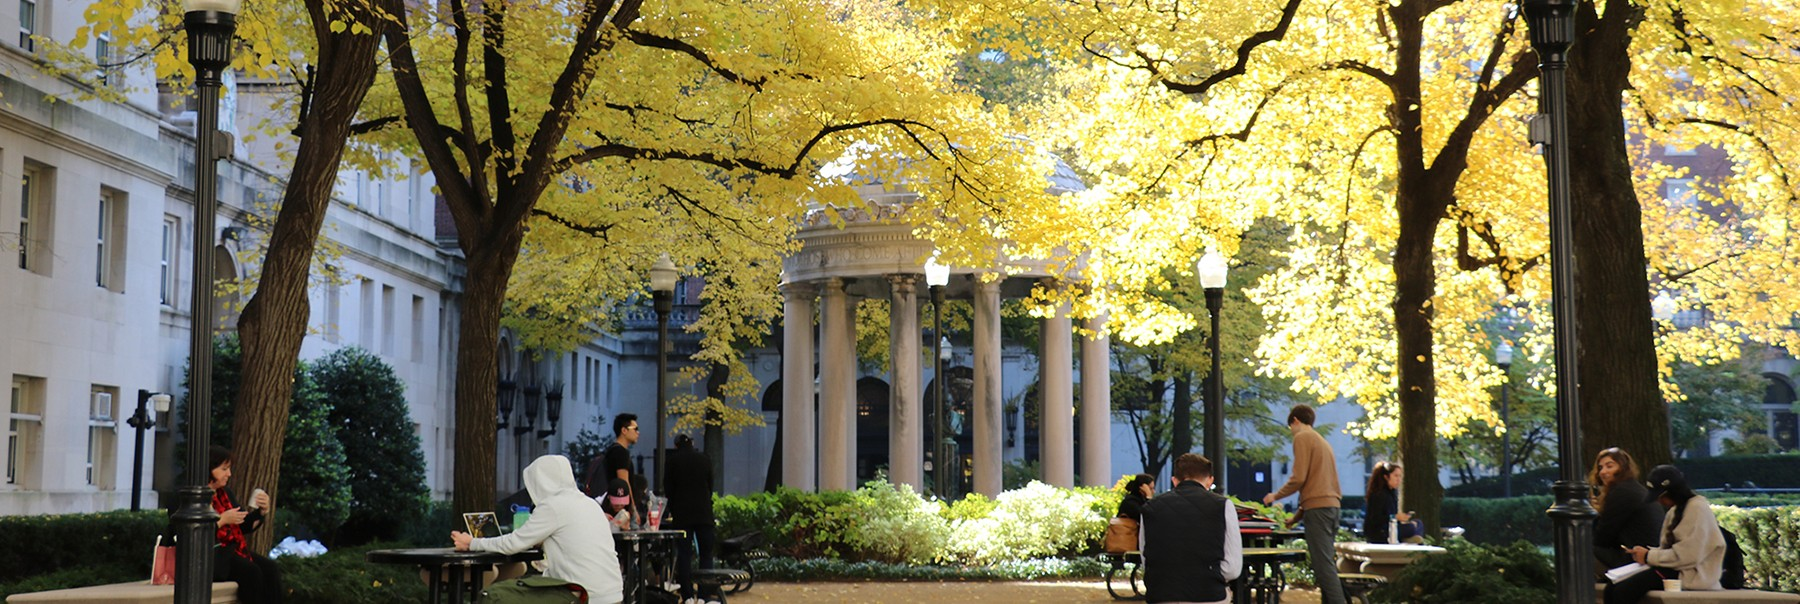 People sitting at tables in Van Am Quad, with trees with yellow leaves in the background